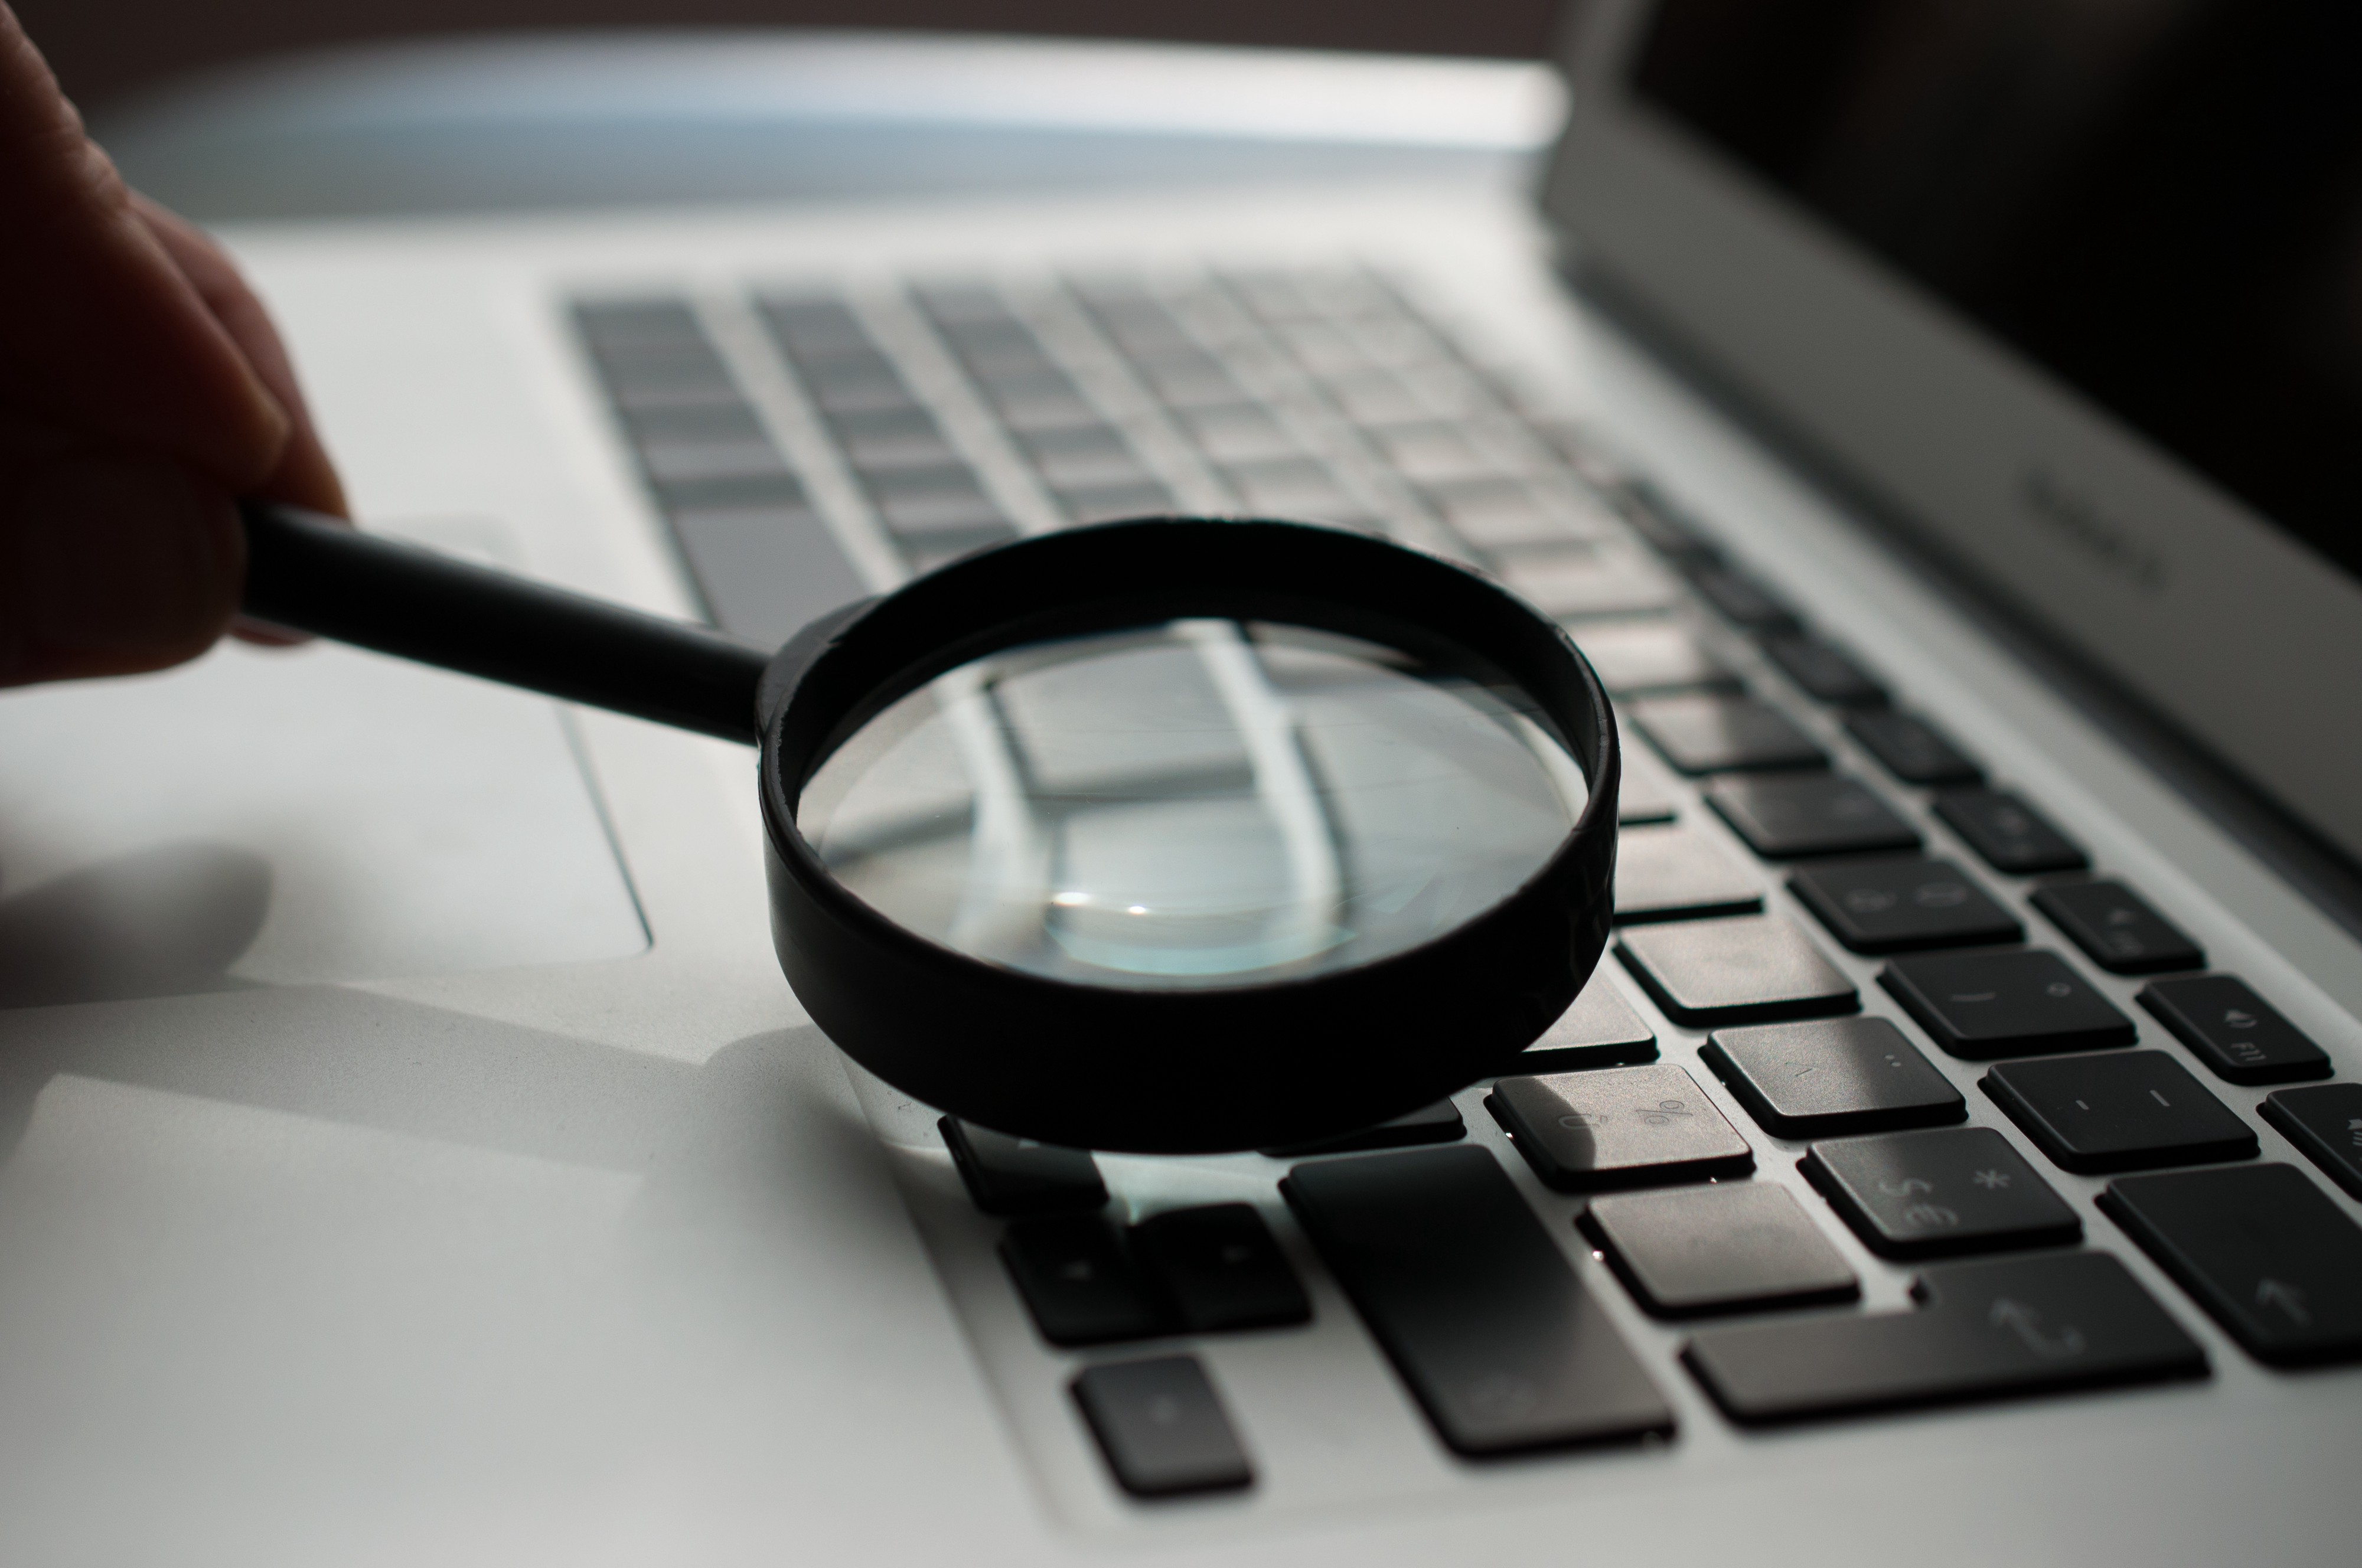 Somebody pointing a magnifying glass on a Macbook Air keyboard, while it's off